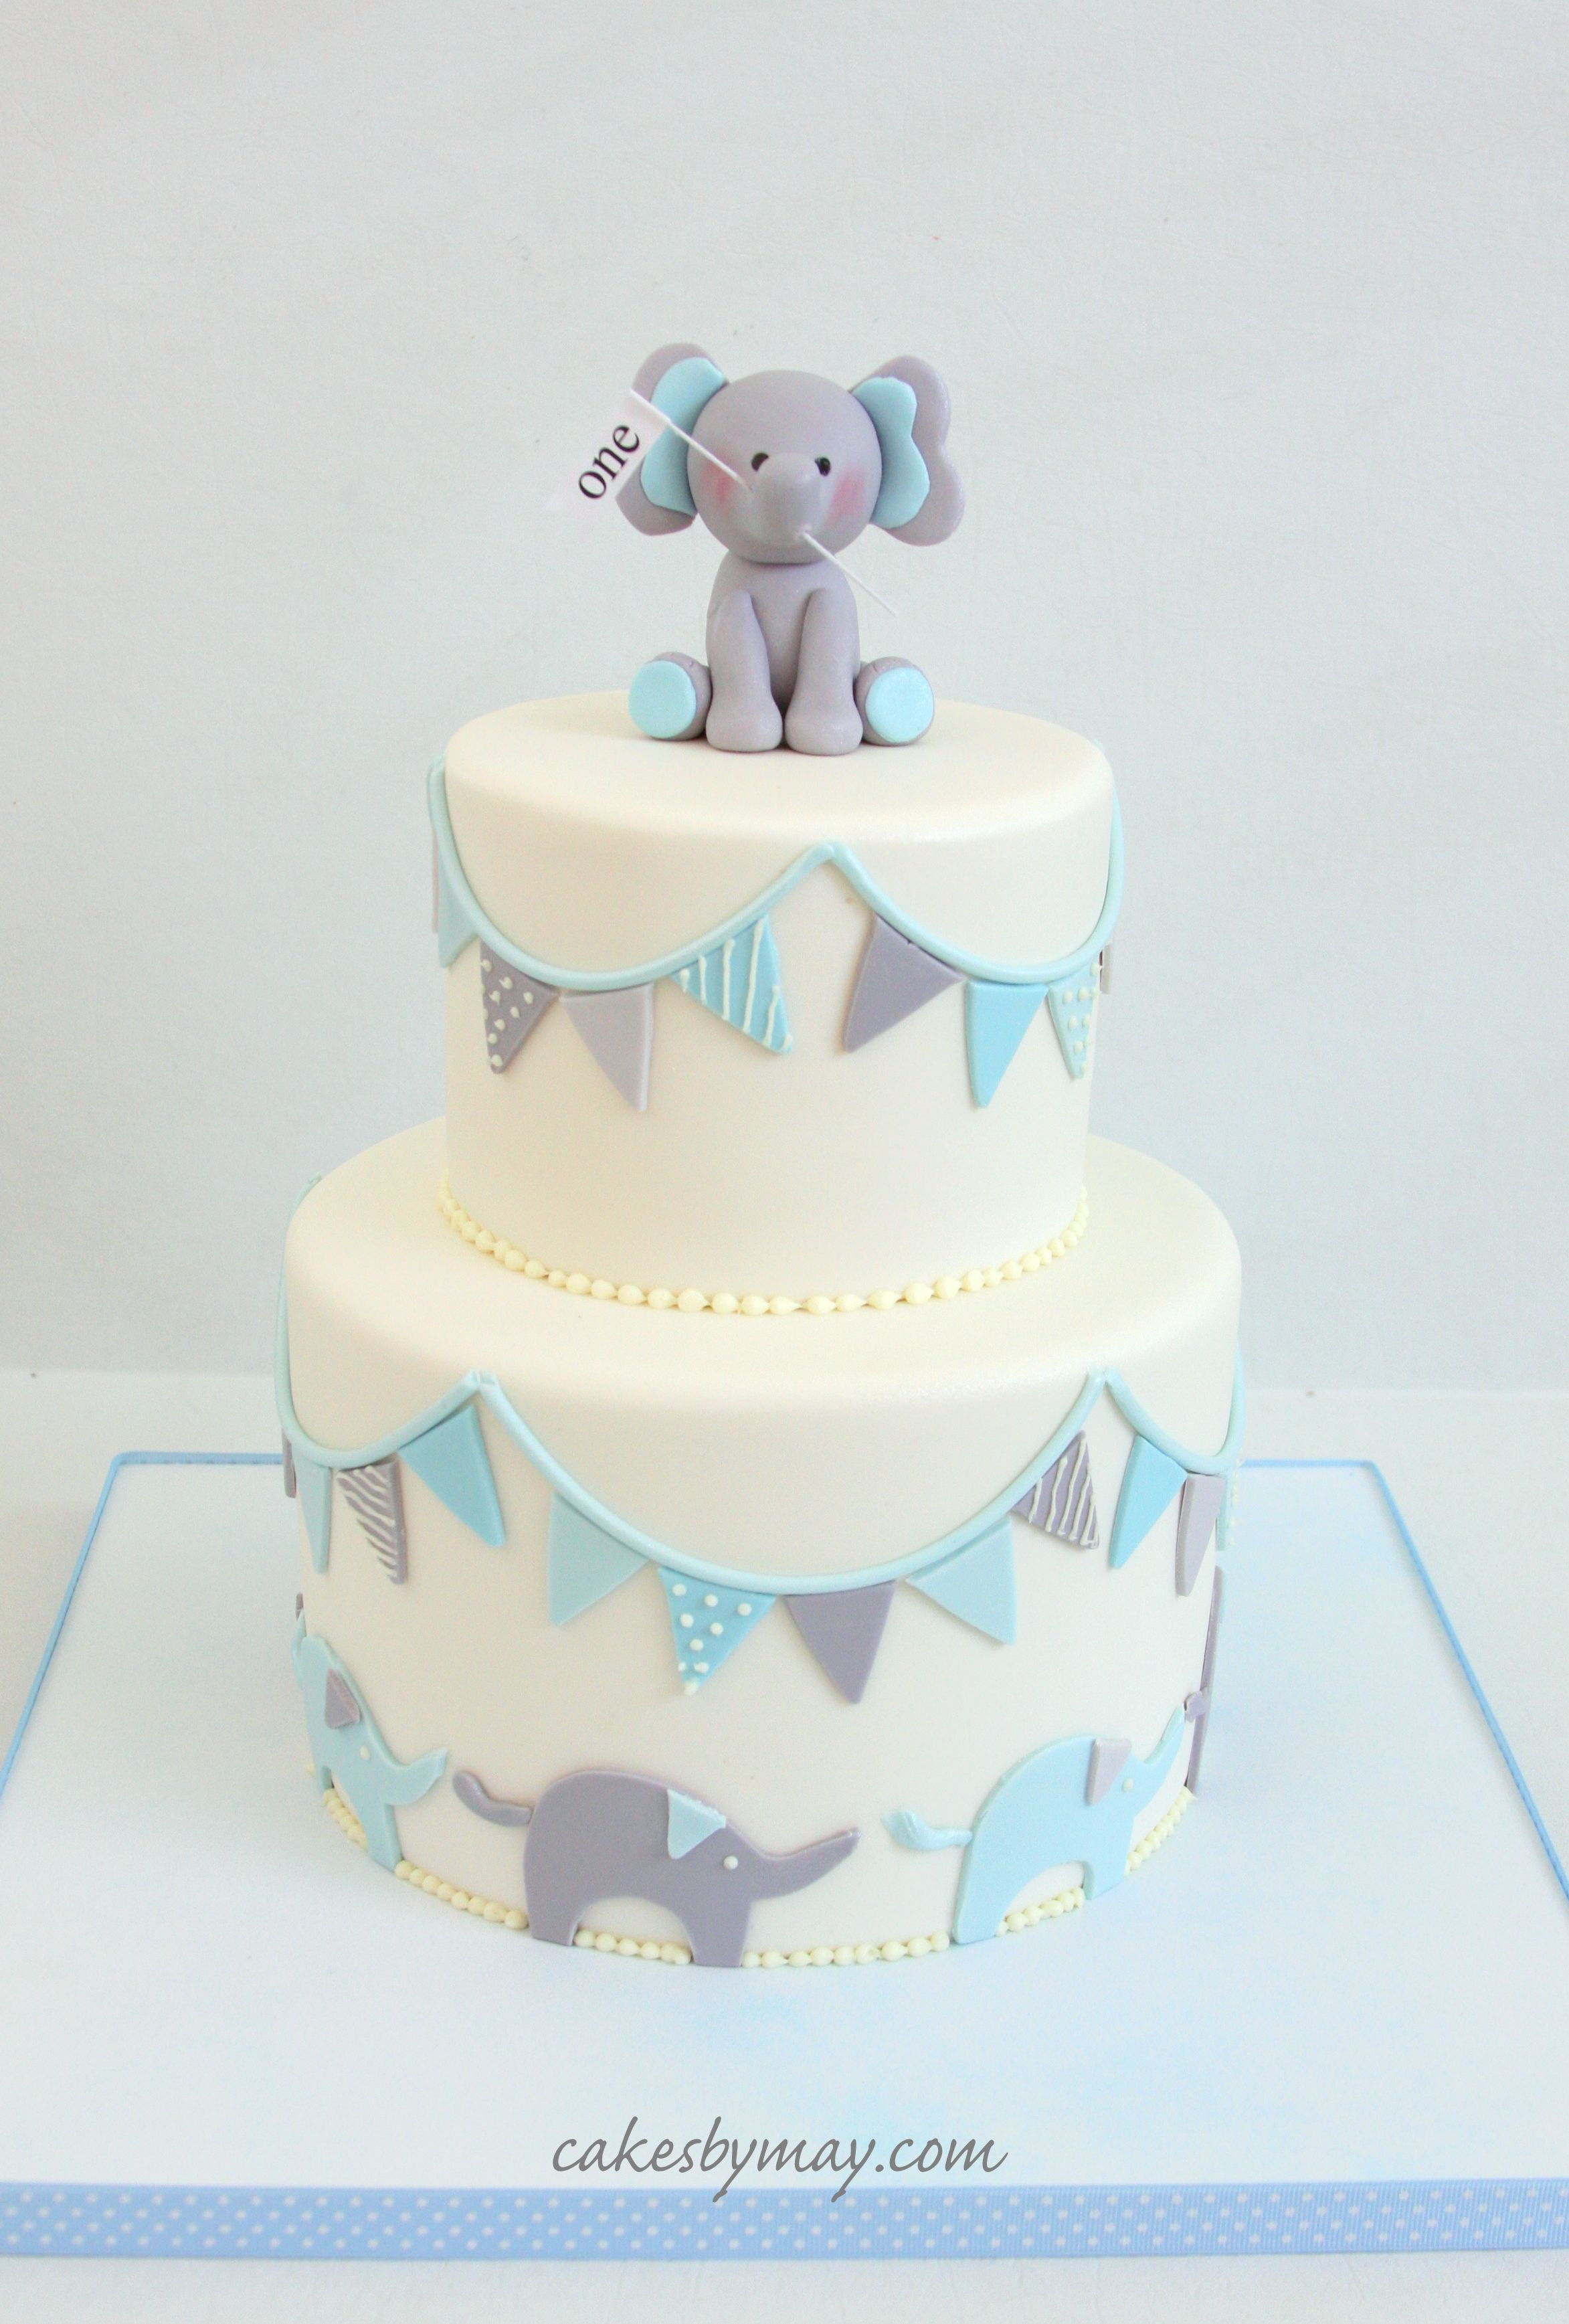 Boys First Birthday Cake Elephants And Banners First Birthday Cake Love All The Subtle